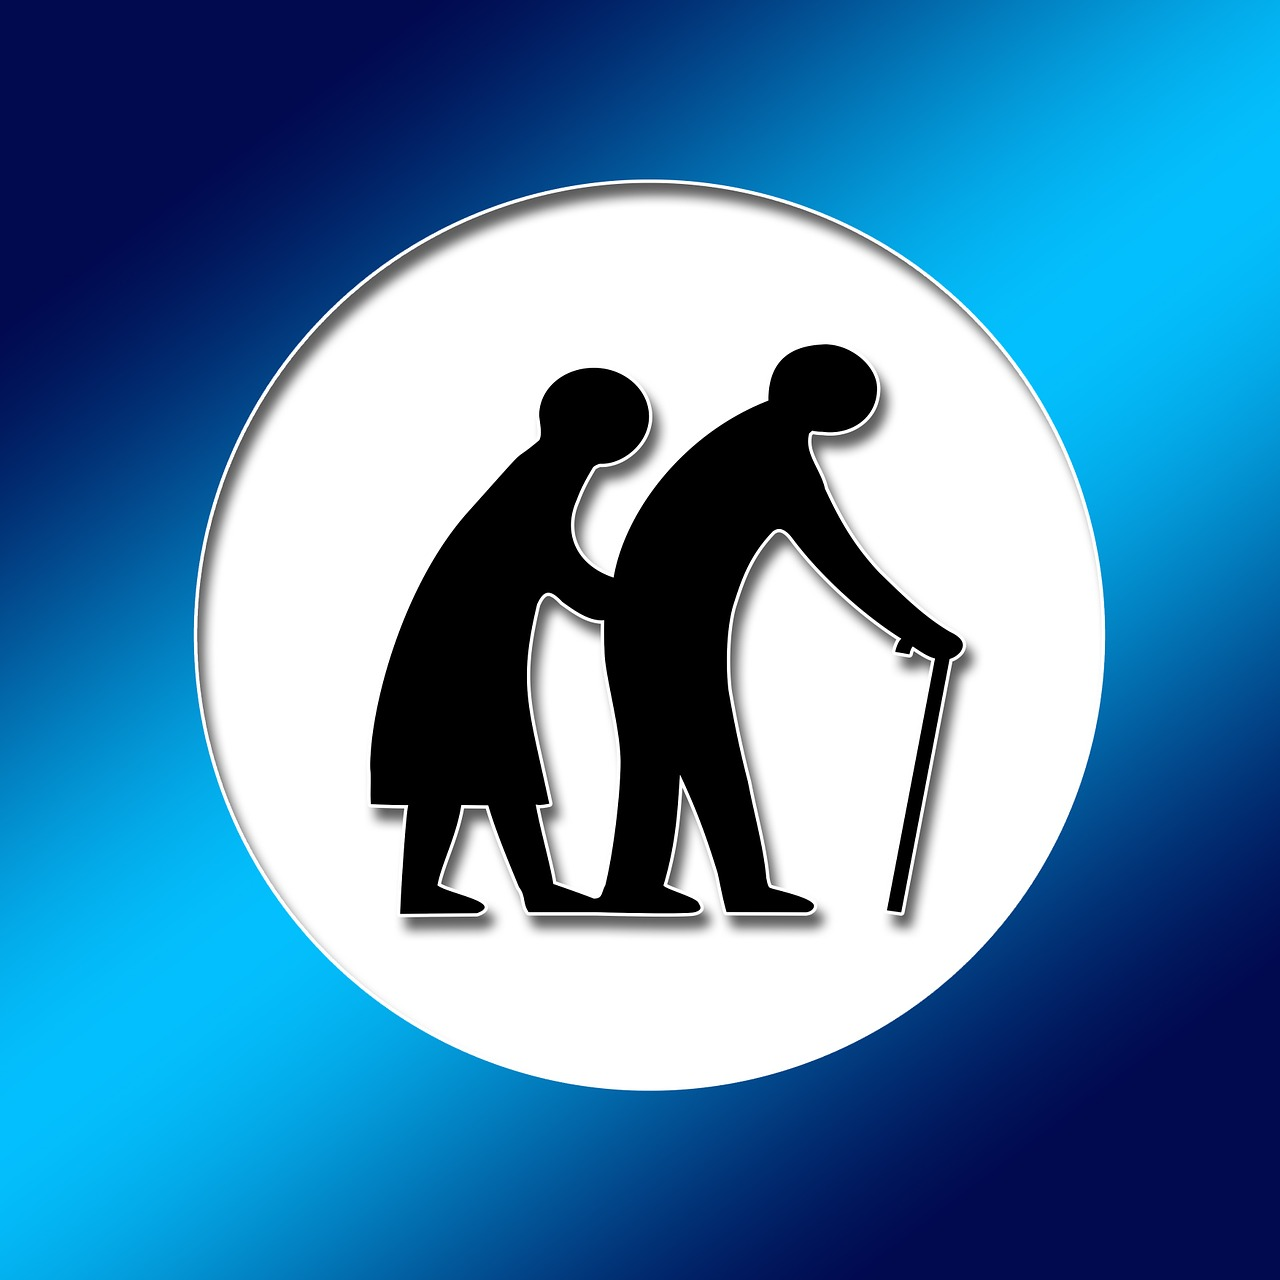 seniors care for the elderly retirement home free photo